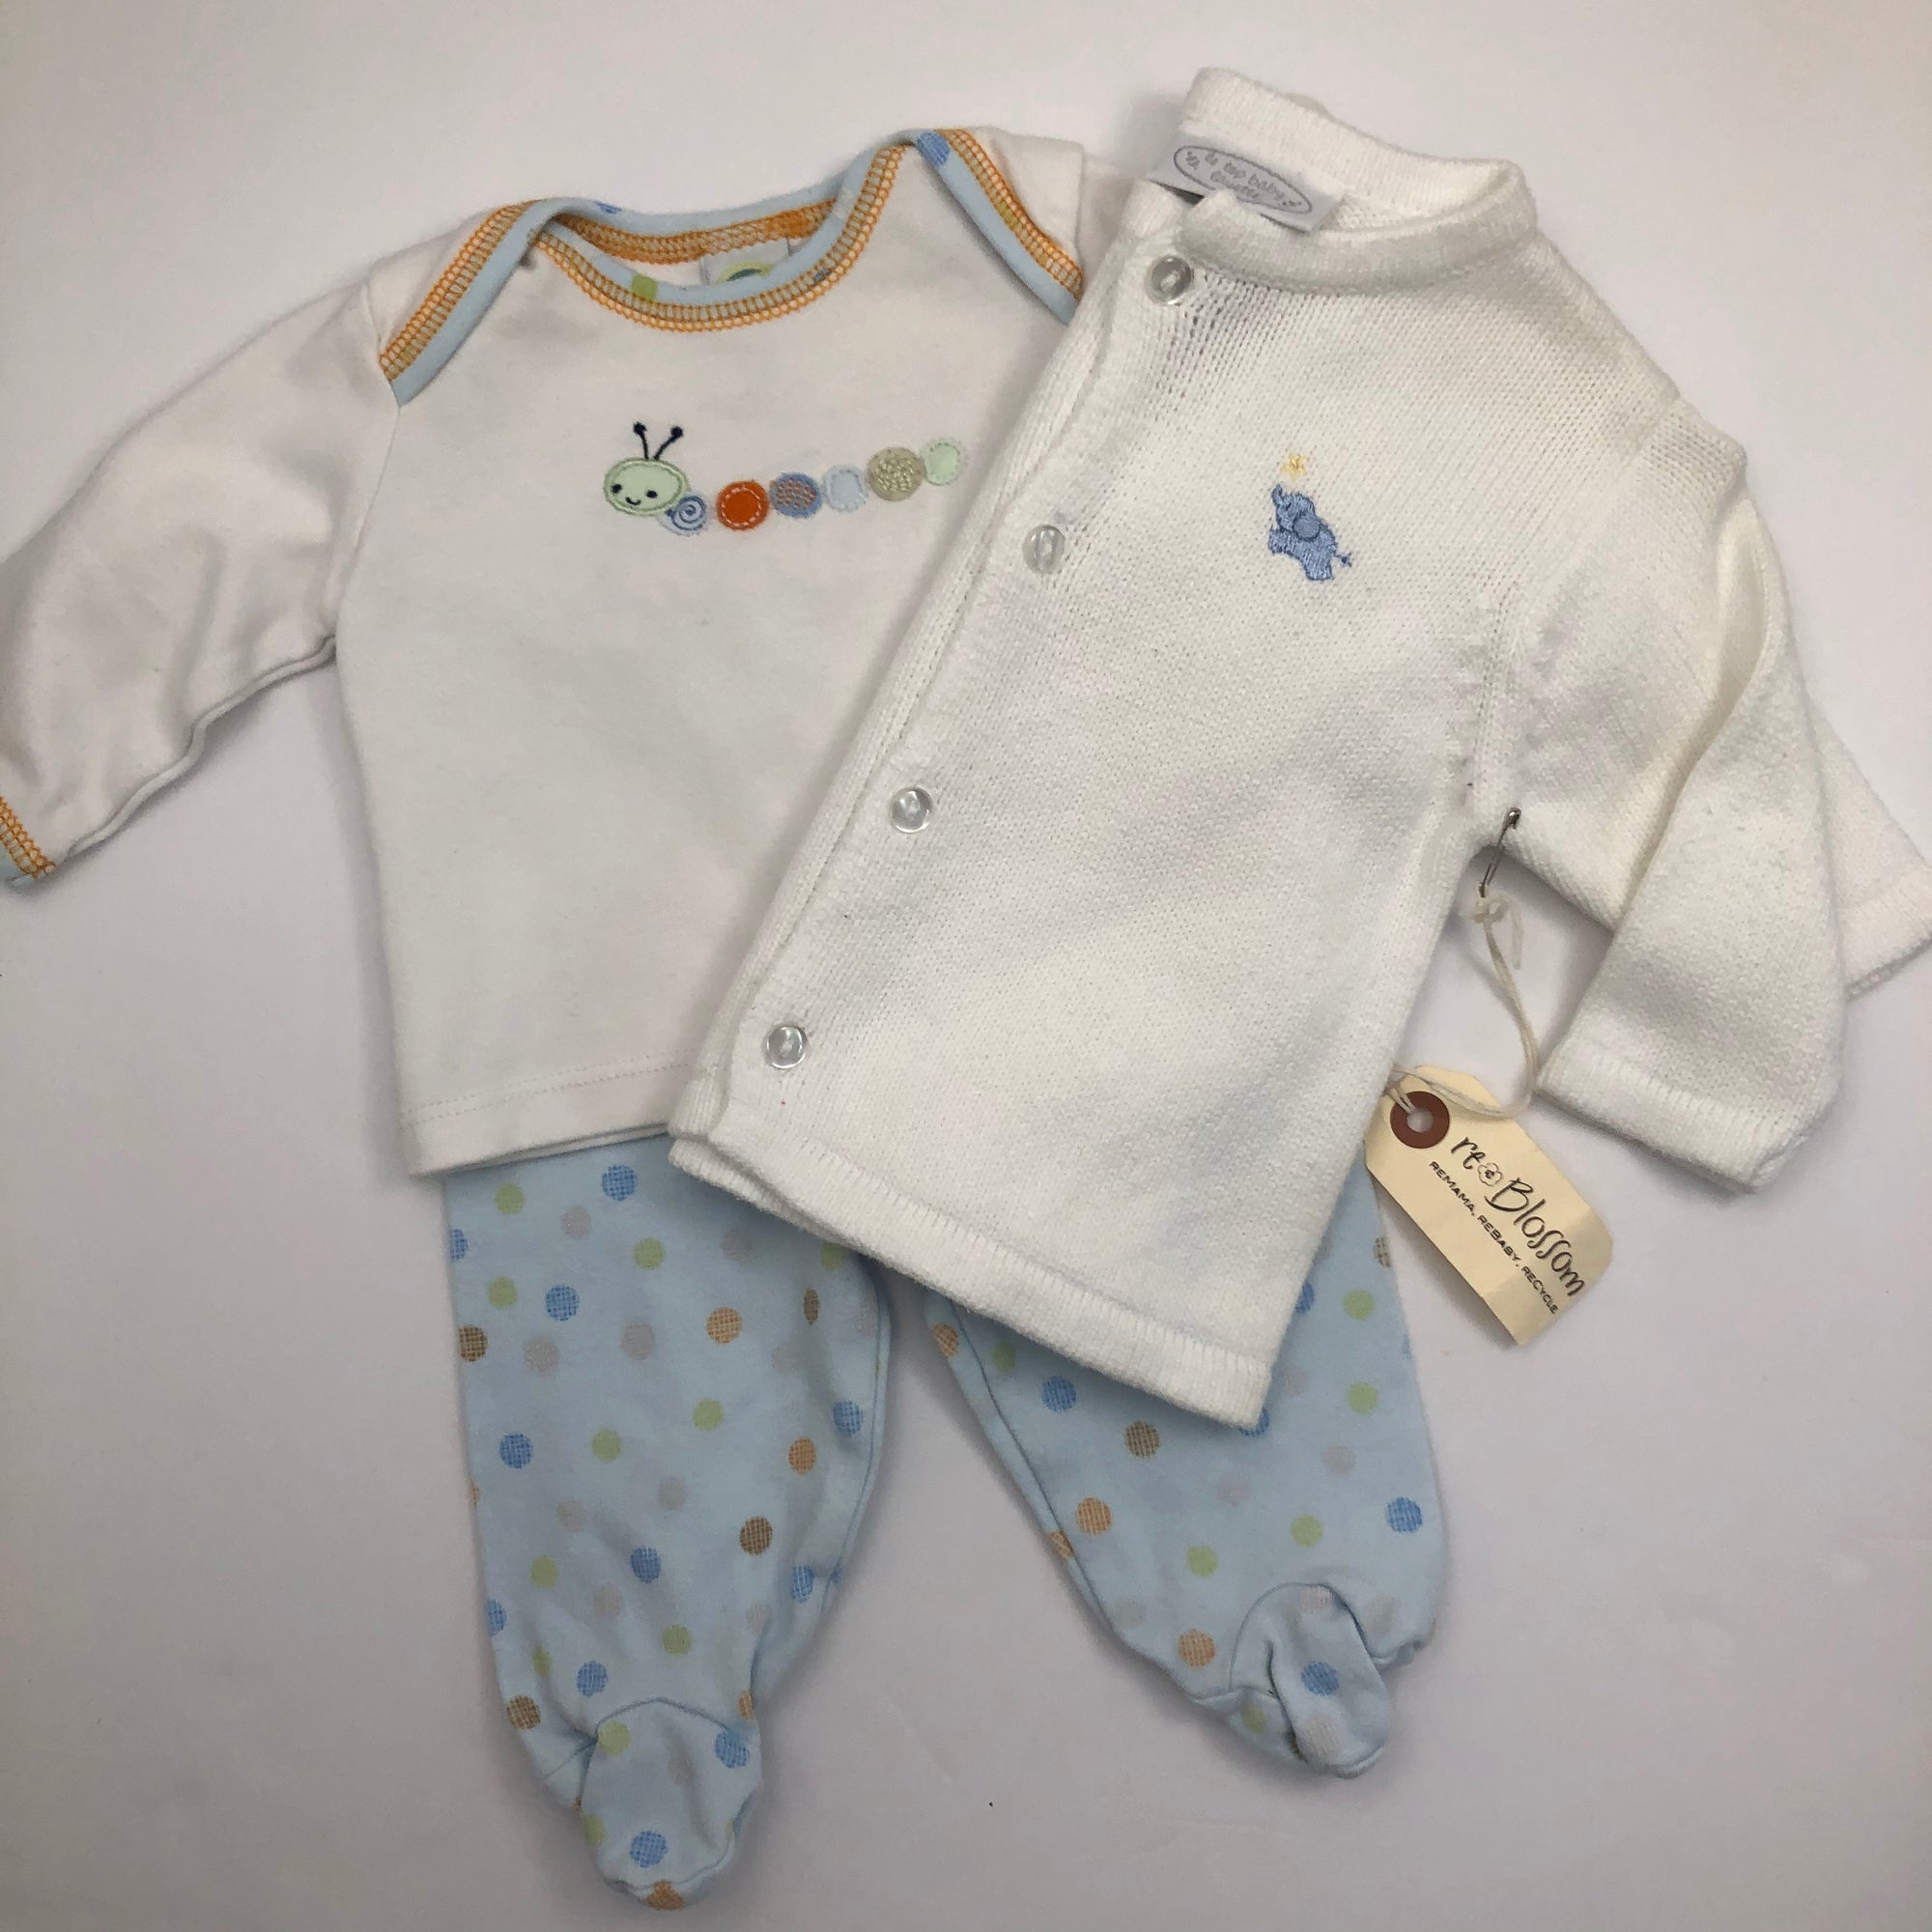 Resale 3 m Little Me Caterpillar Outfit & Le Top Layette White Elephant Cardigan Set